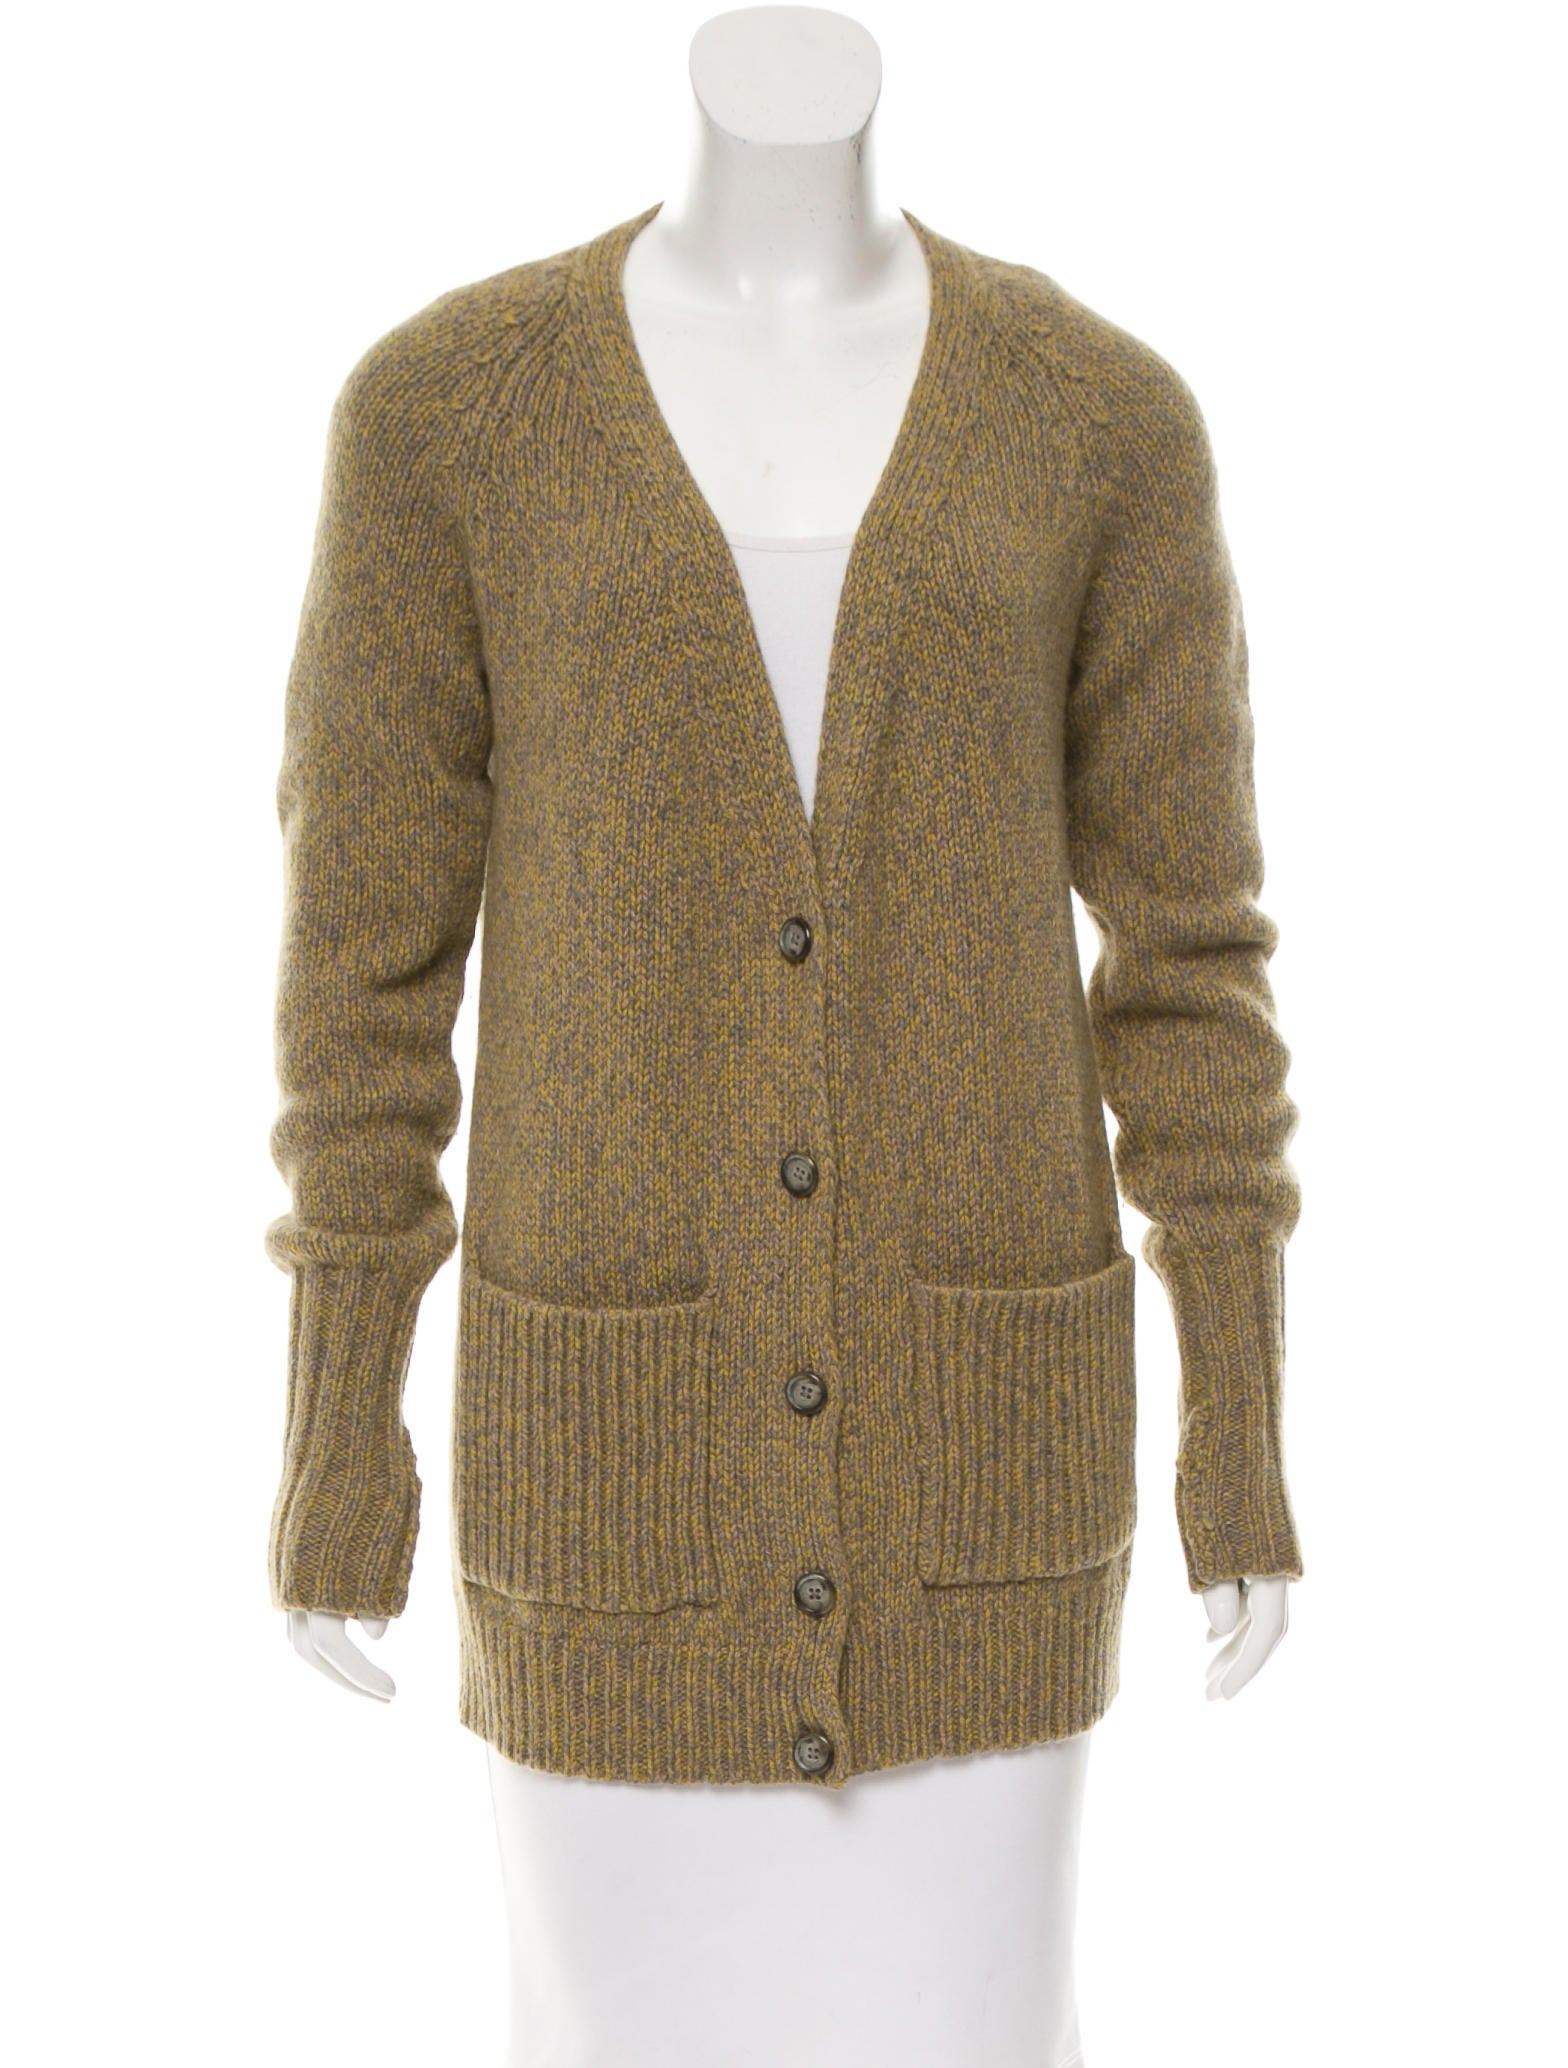 Wool Blends refer to wool fibers that have been blended will both natural or man-made fibers in order to produce a material that possesses qualities of each fiber. Silk wool as the name implies refers to a material that has a medium weight and satiny luster making it soft on the skin, but still warm.